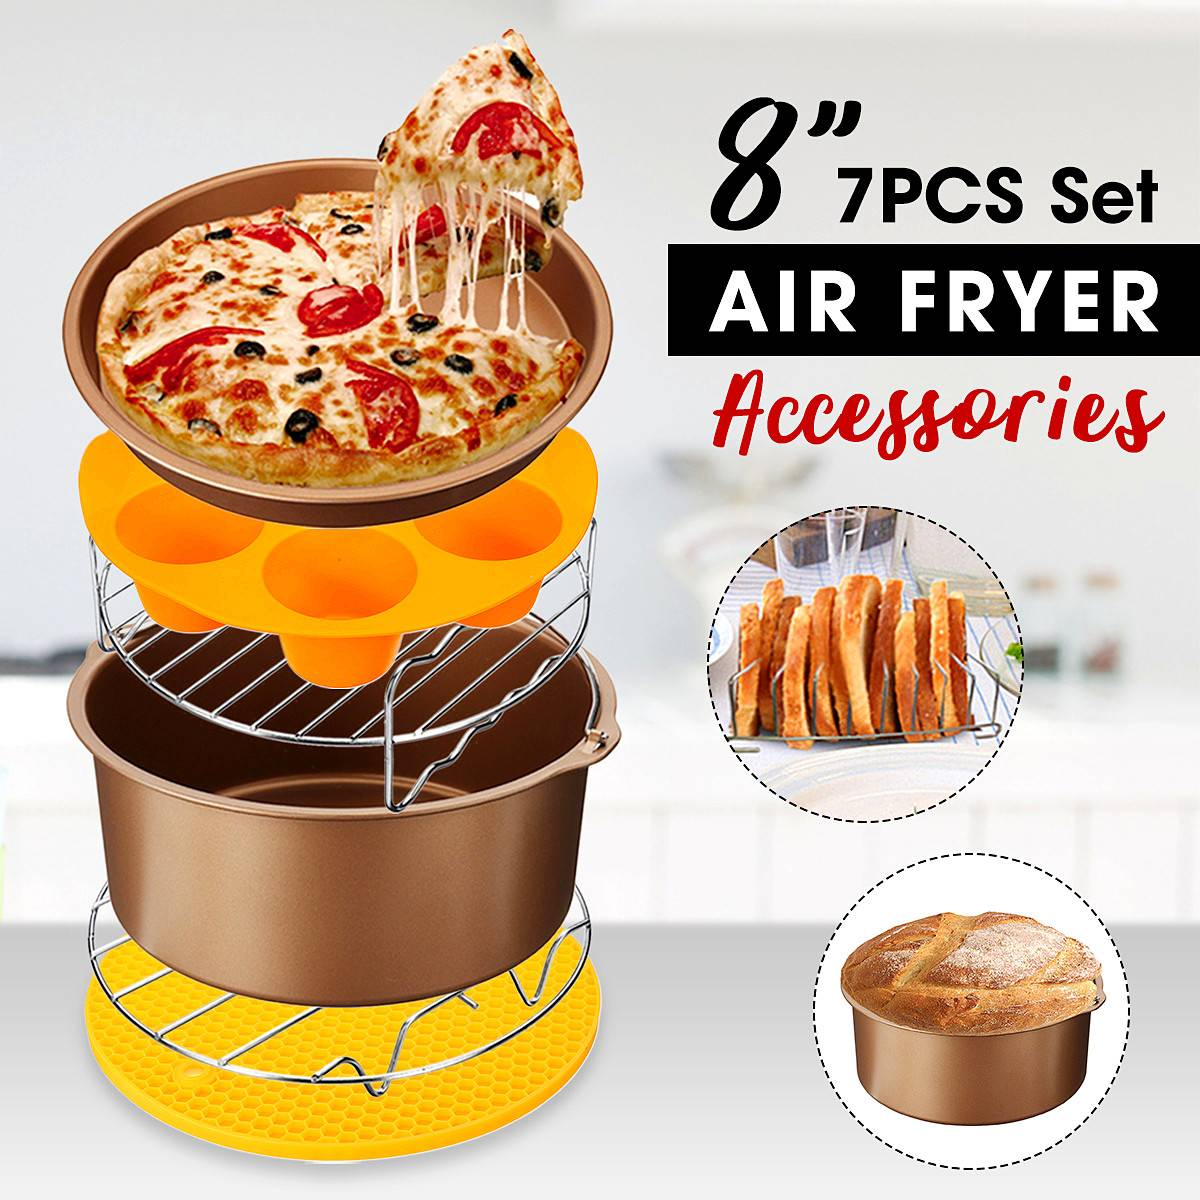 New 7-IN-1 8 inch Non-stick 7Pcs Air Fryer Accessories Baking Pizza Pan Kitchen Cooking Tool s Fit for all 4.2-6.8QT Air FryerNew 7-IN-1 8 inch Non-stick 7Pcs Air Fryer Accessories Baking Pizza Pan Kitchen Cooking Tool s Fit for all 4.2-6.8QT Air Fryer